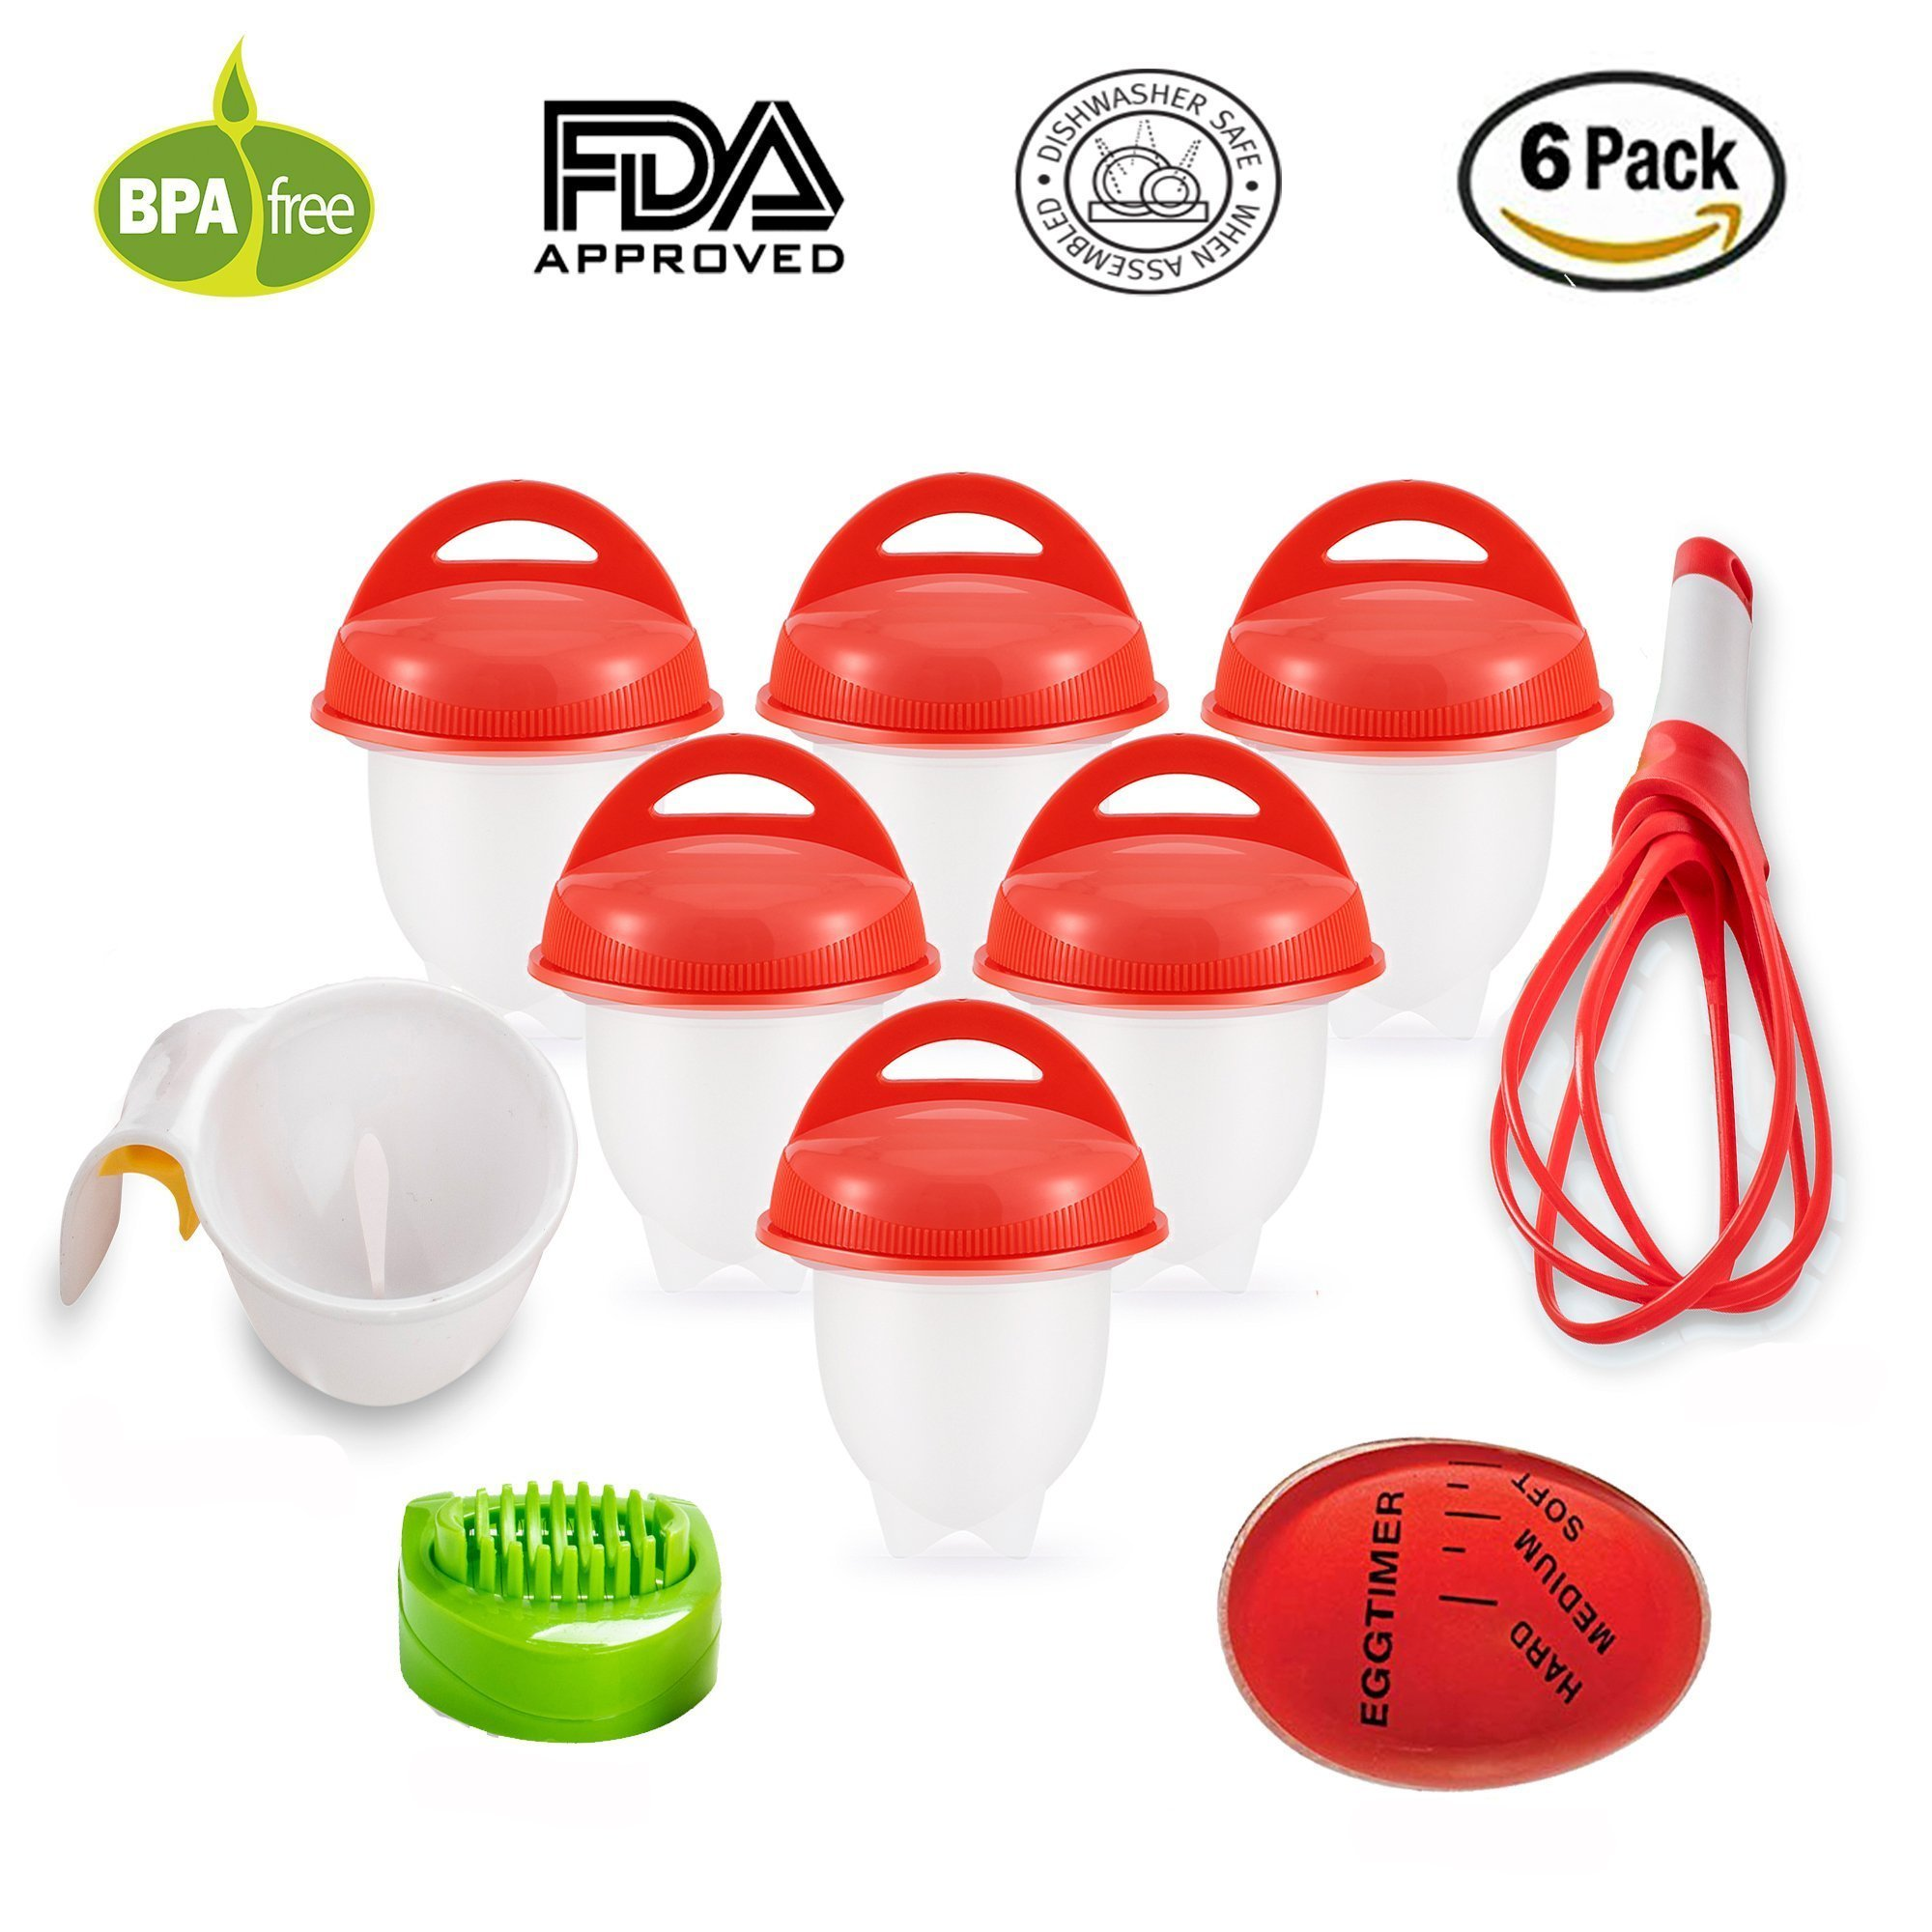 As Seen on TV Egg Cooker Set - 6 Pack, Non Stick Silicon Egg Boiler, Hard Boiled Eggs With No Shell | Includes 4 FREE Complimentary Items: 1 Egg Timer, 1 Egg Separator, 1 Egg Whisk and 1 Egg Slicer by KooZs (Image #1)